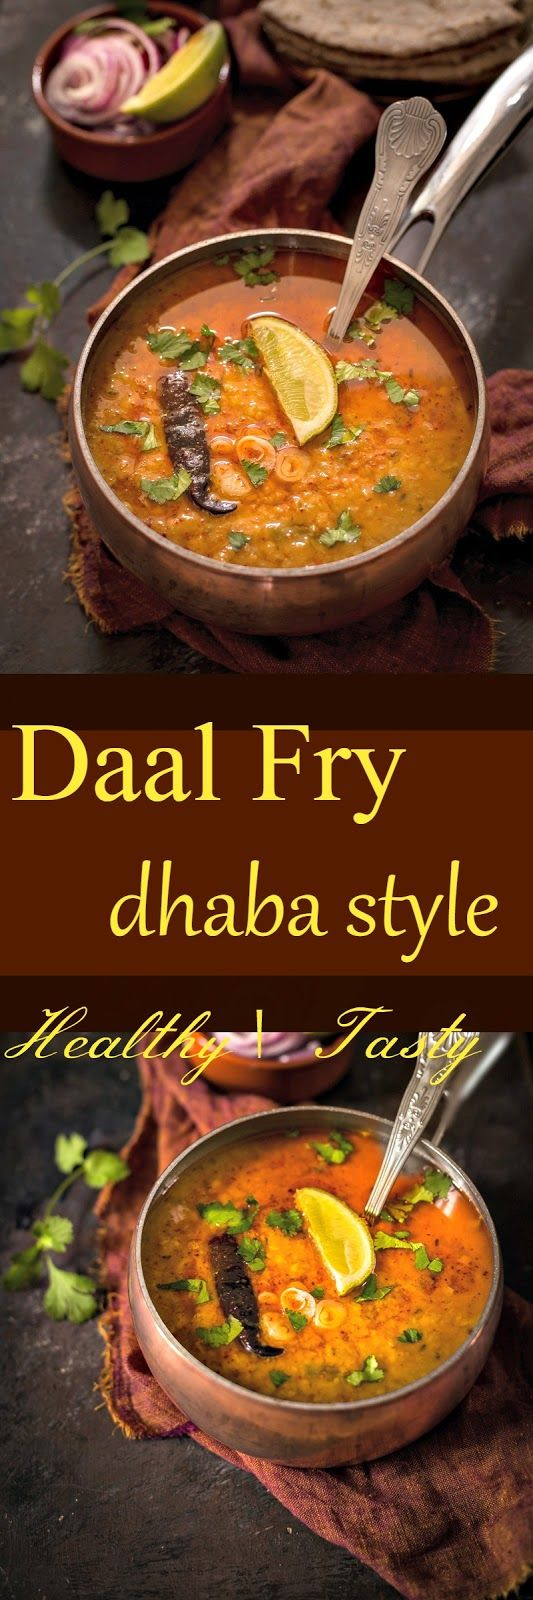 Jagruti's Cooking Odyssey: Dhaba Style Daal / Dal / Dahl Fry